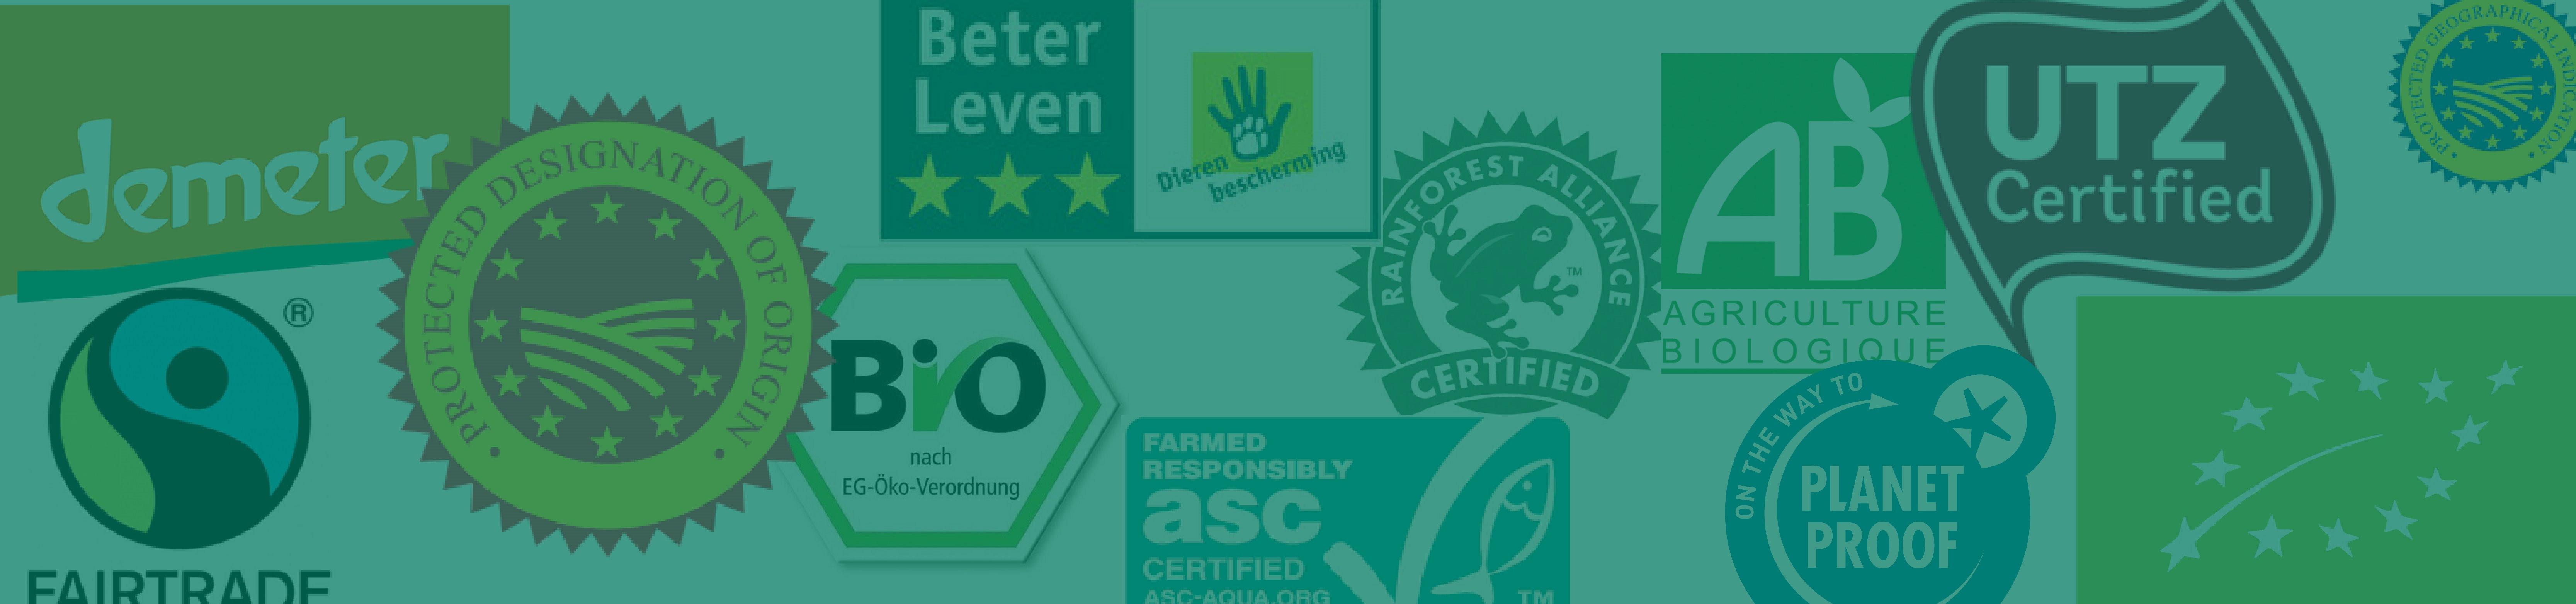 Certification marks help make the healthy, safe and sustainable choice